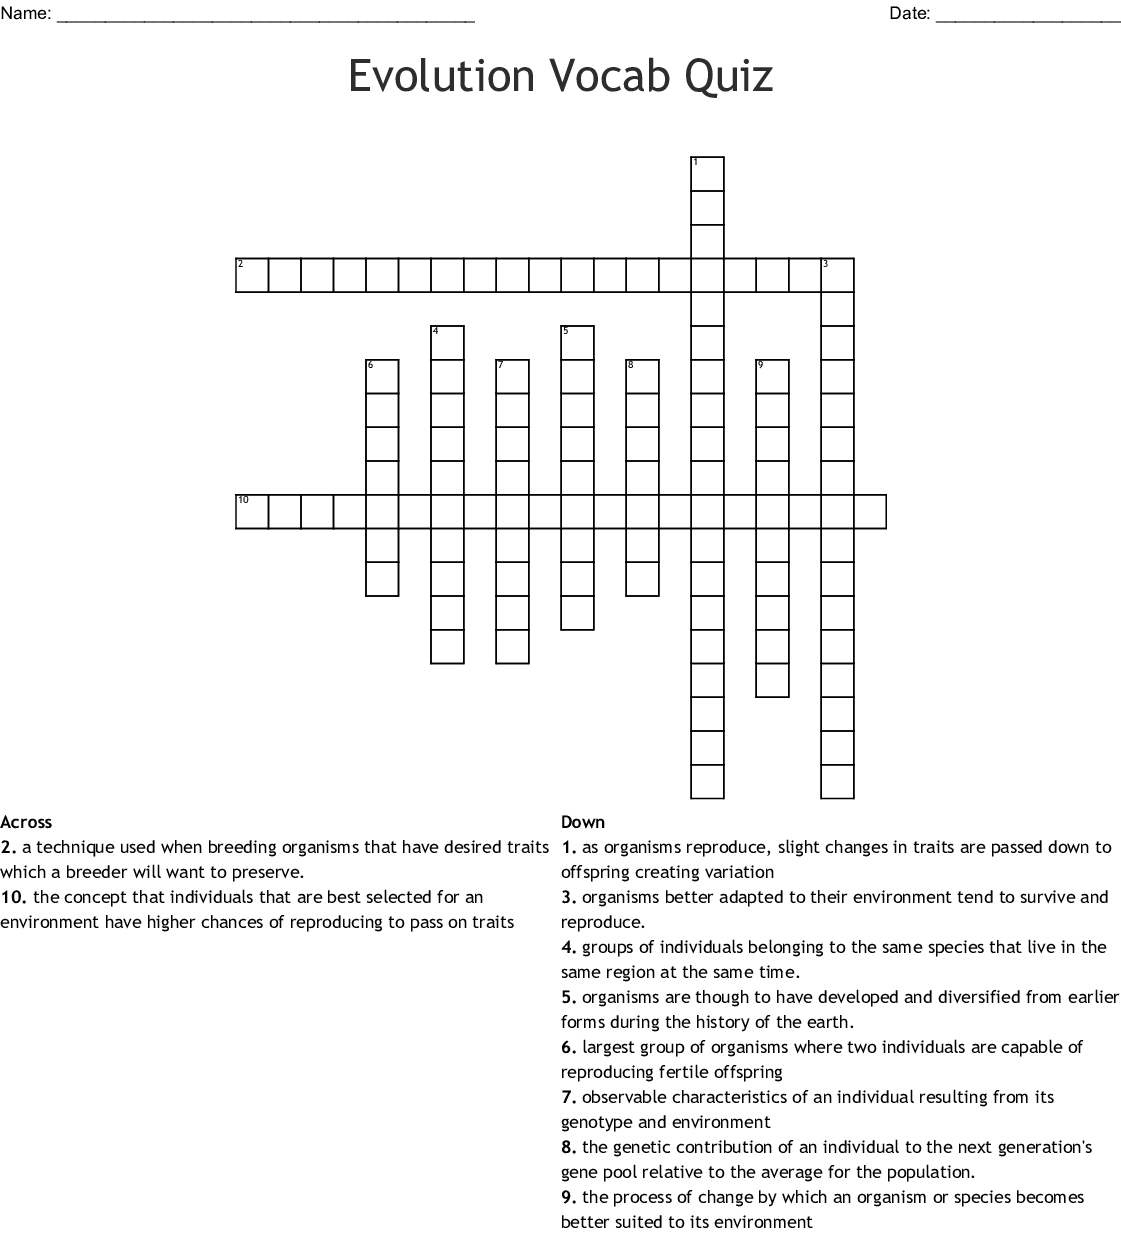 Evolution Vocab Quiz Crossword - Wordmint - Printable Vocabulary Quiz Crossword Puzzle